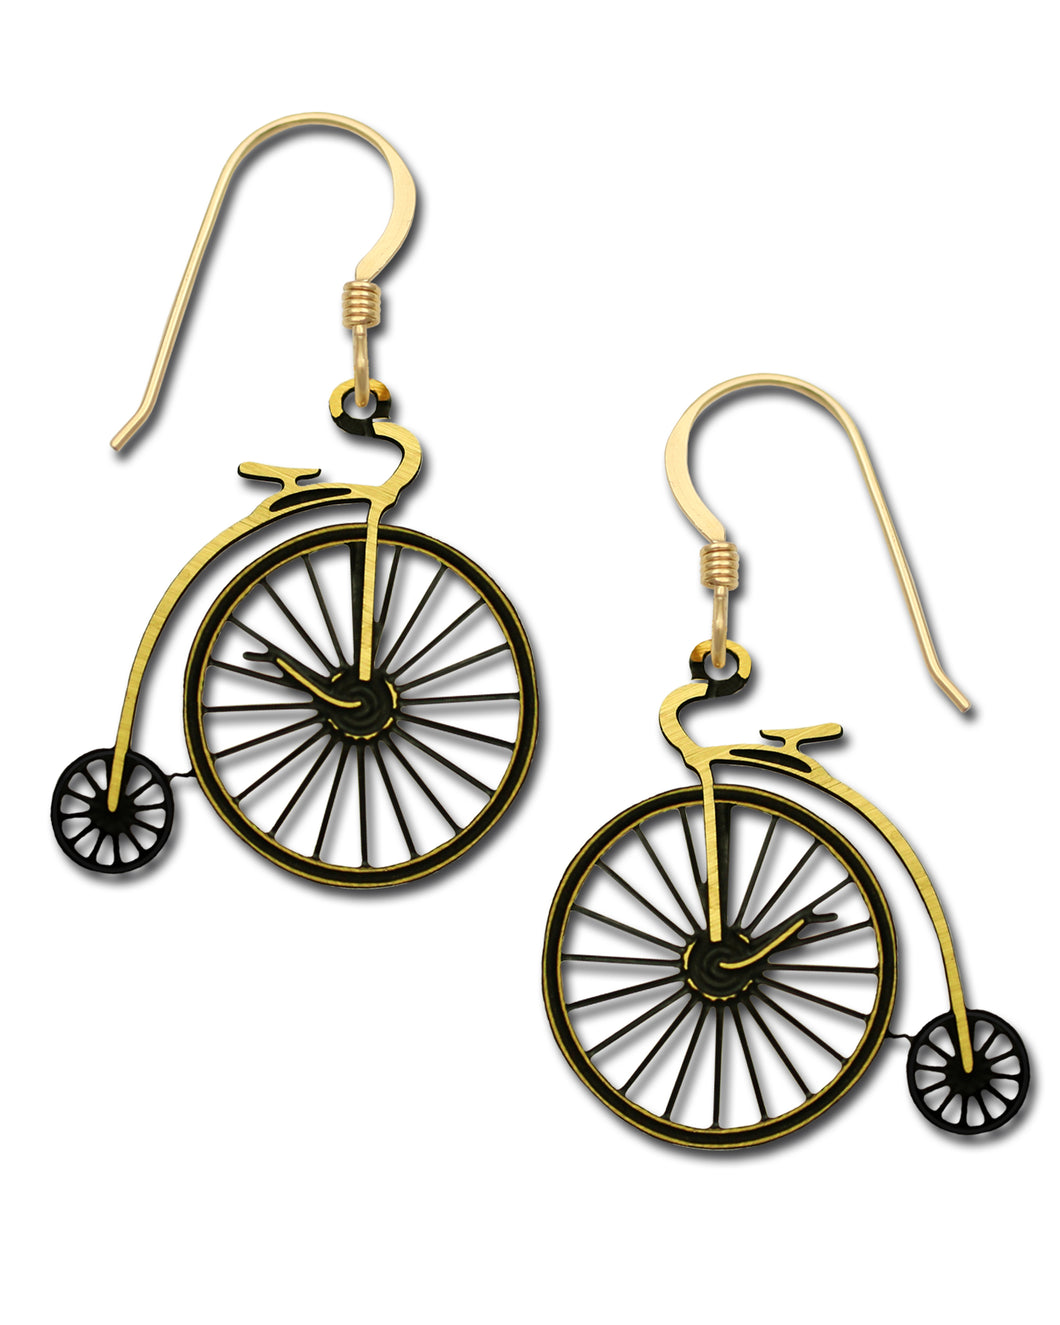 Sienna Sky Velocipede Antique Bicycle Hand Painted Earrings